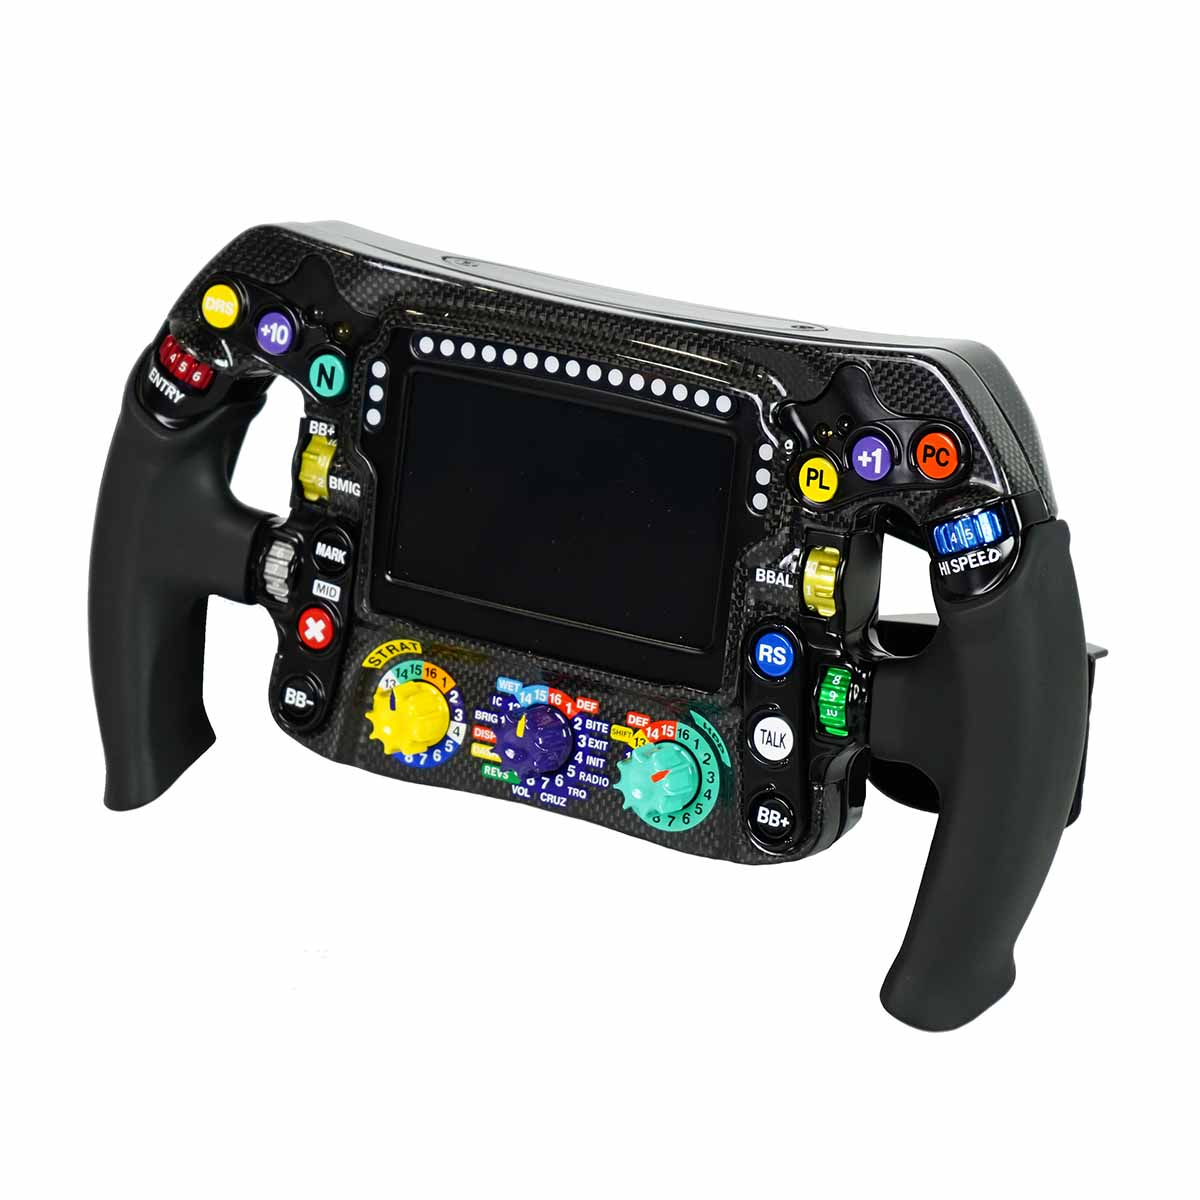 2019 Lewis Hamilton Mercedes Amg Limited Edition Amalgam Replica F1 Steering Wheel Racing Hall Of Fame Collection